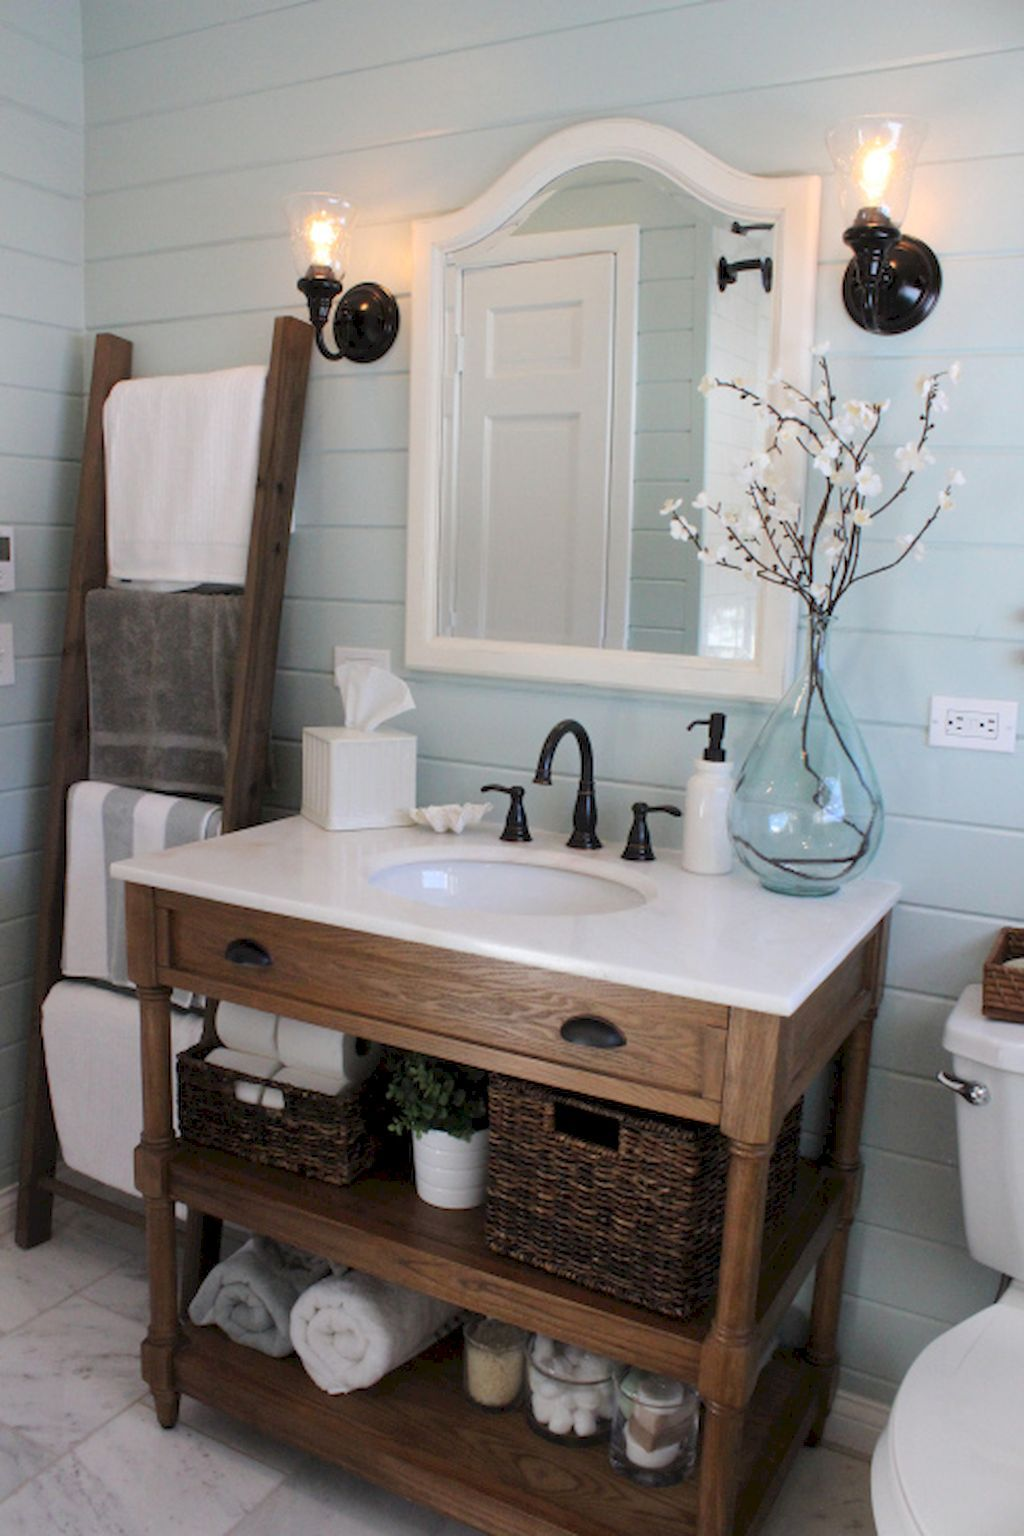 Cool 35 Awesome Coastal Style Nautical Bathroom Designs Ideas  Https://homevialand.com